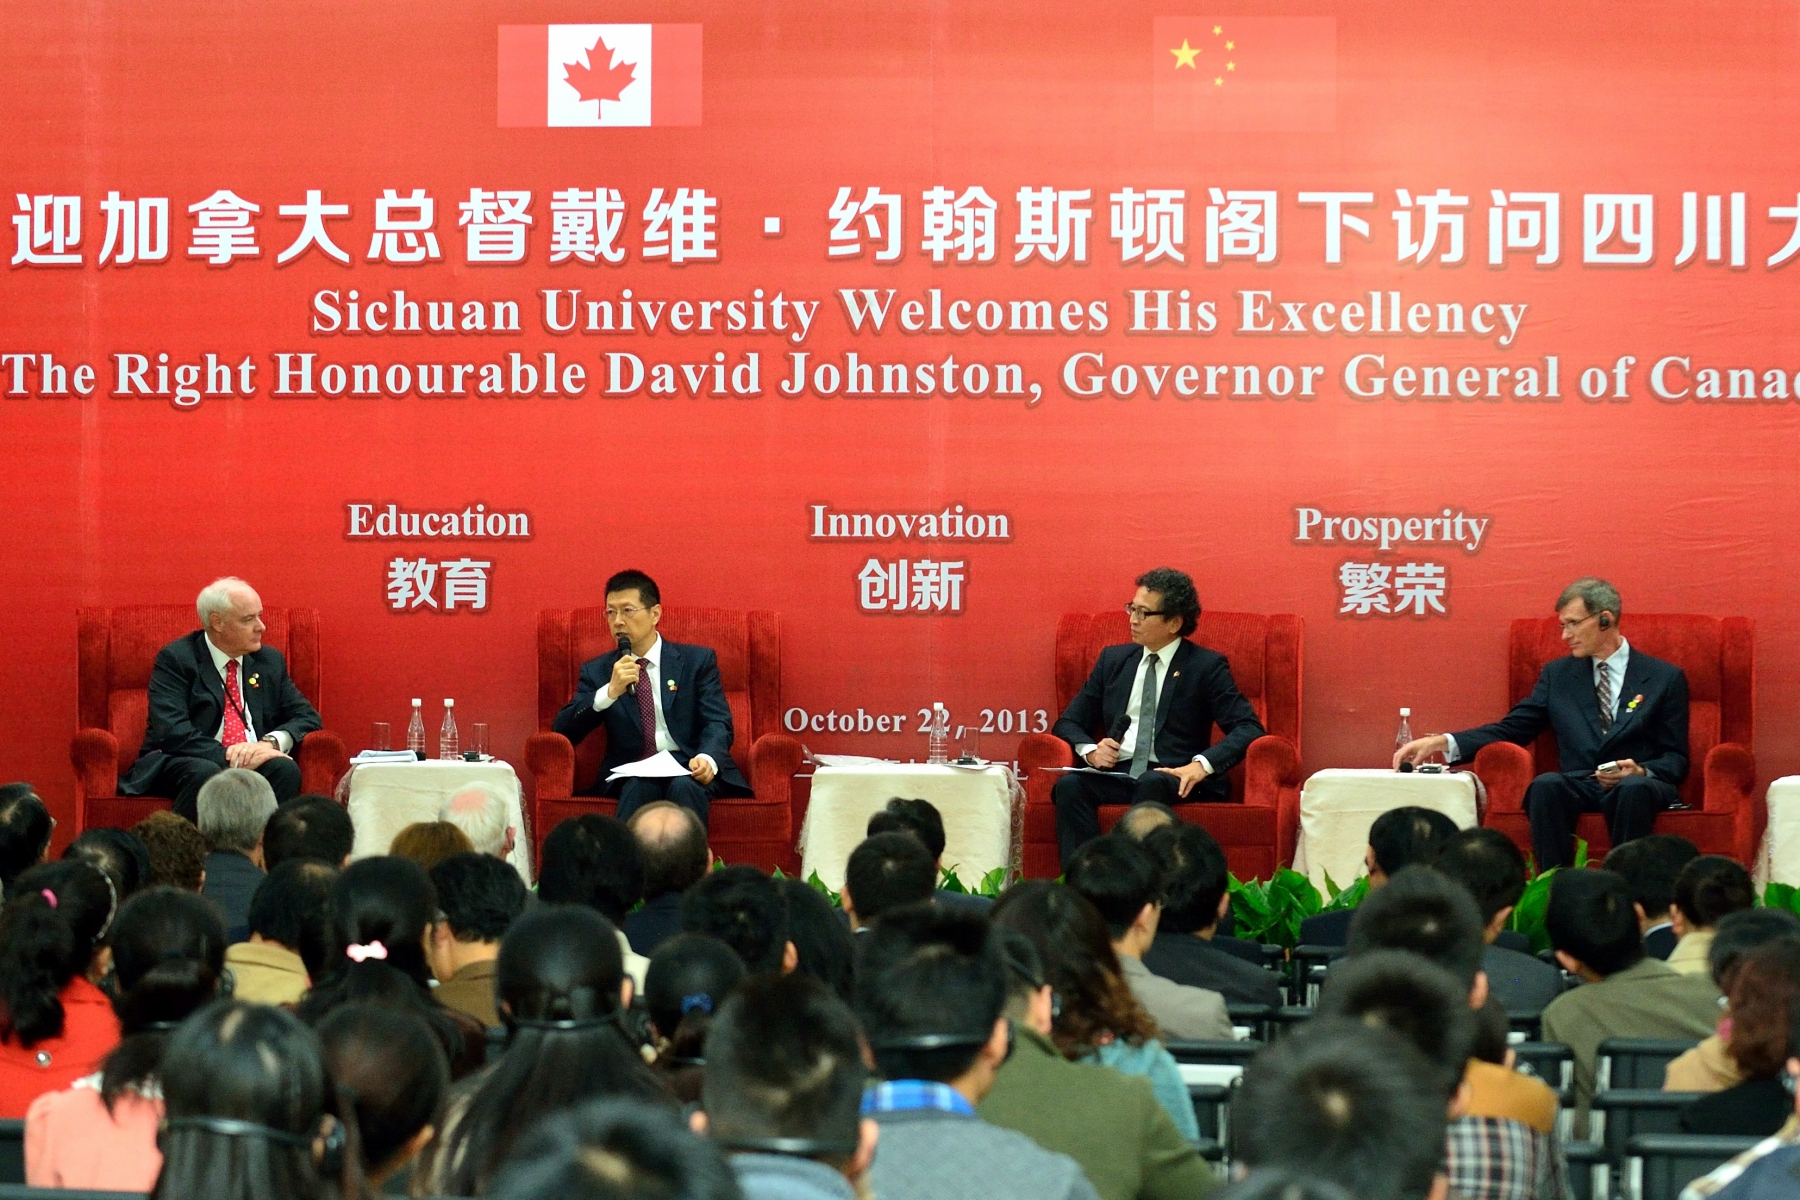 The speech was followed by a discussion with Canadian and Chinese panellists on education, innovation and prosperity.